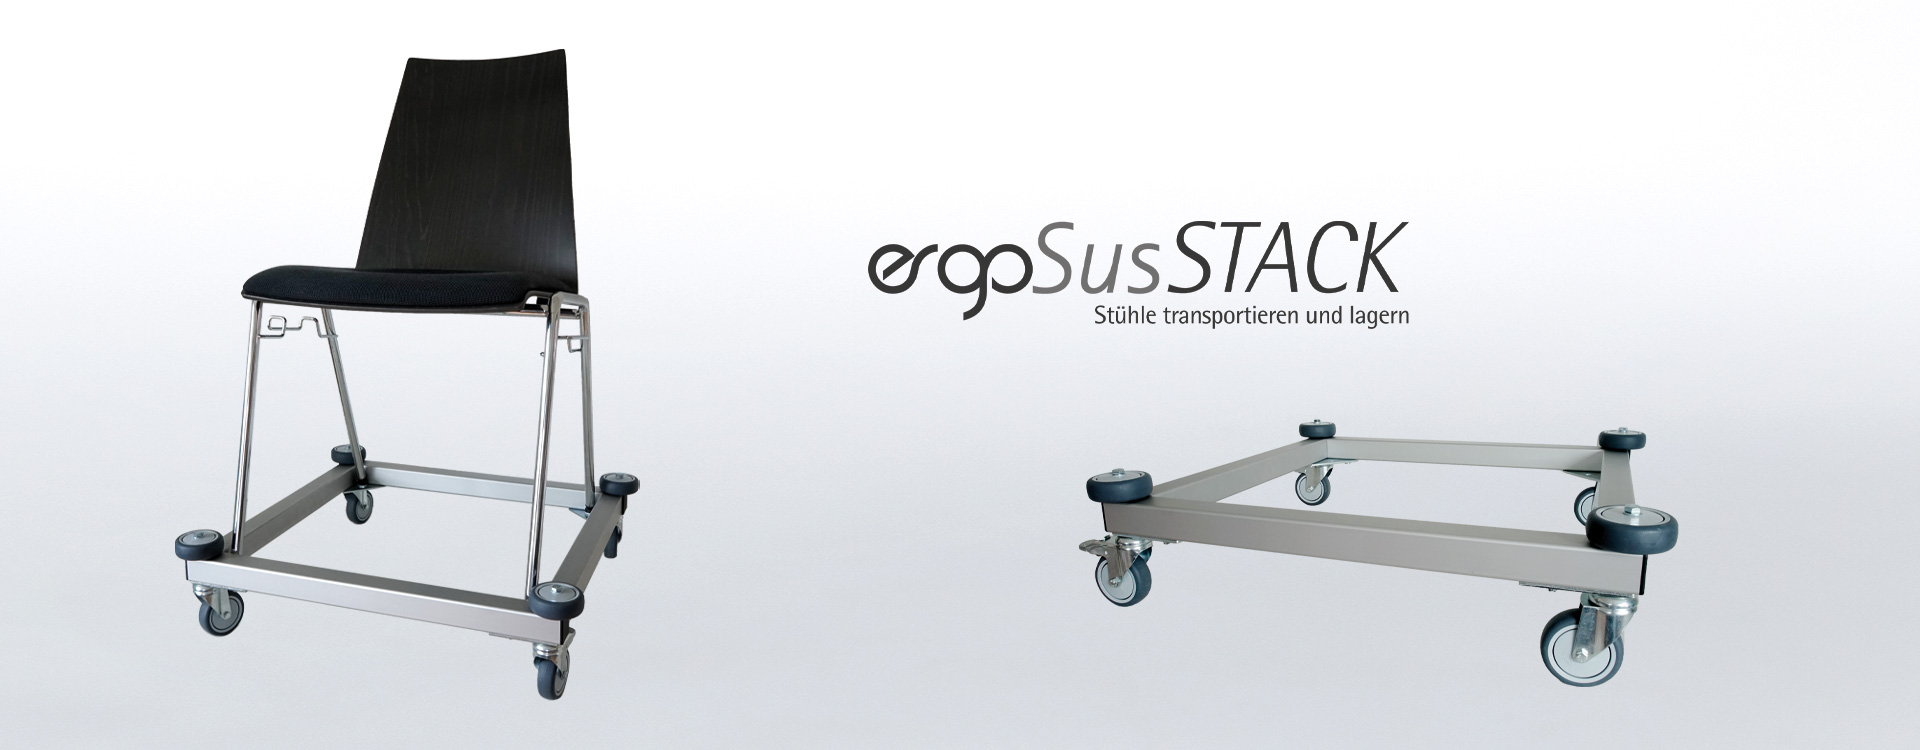 ErgoSus Stack Stuhltransport TItelbild